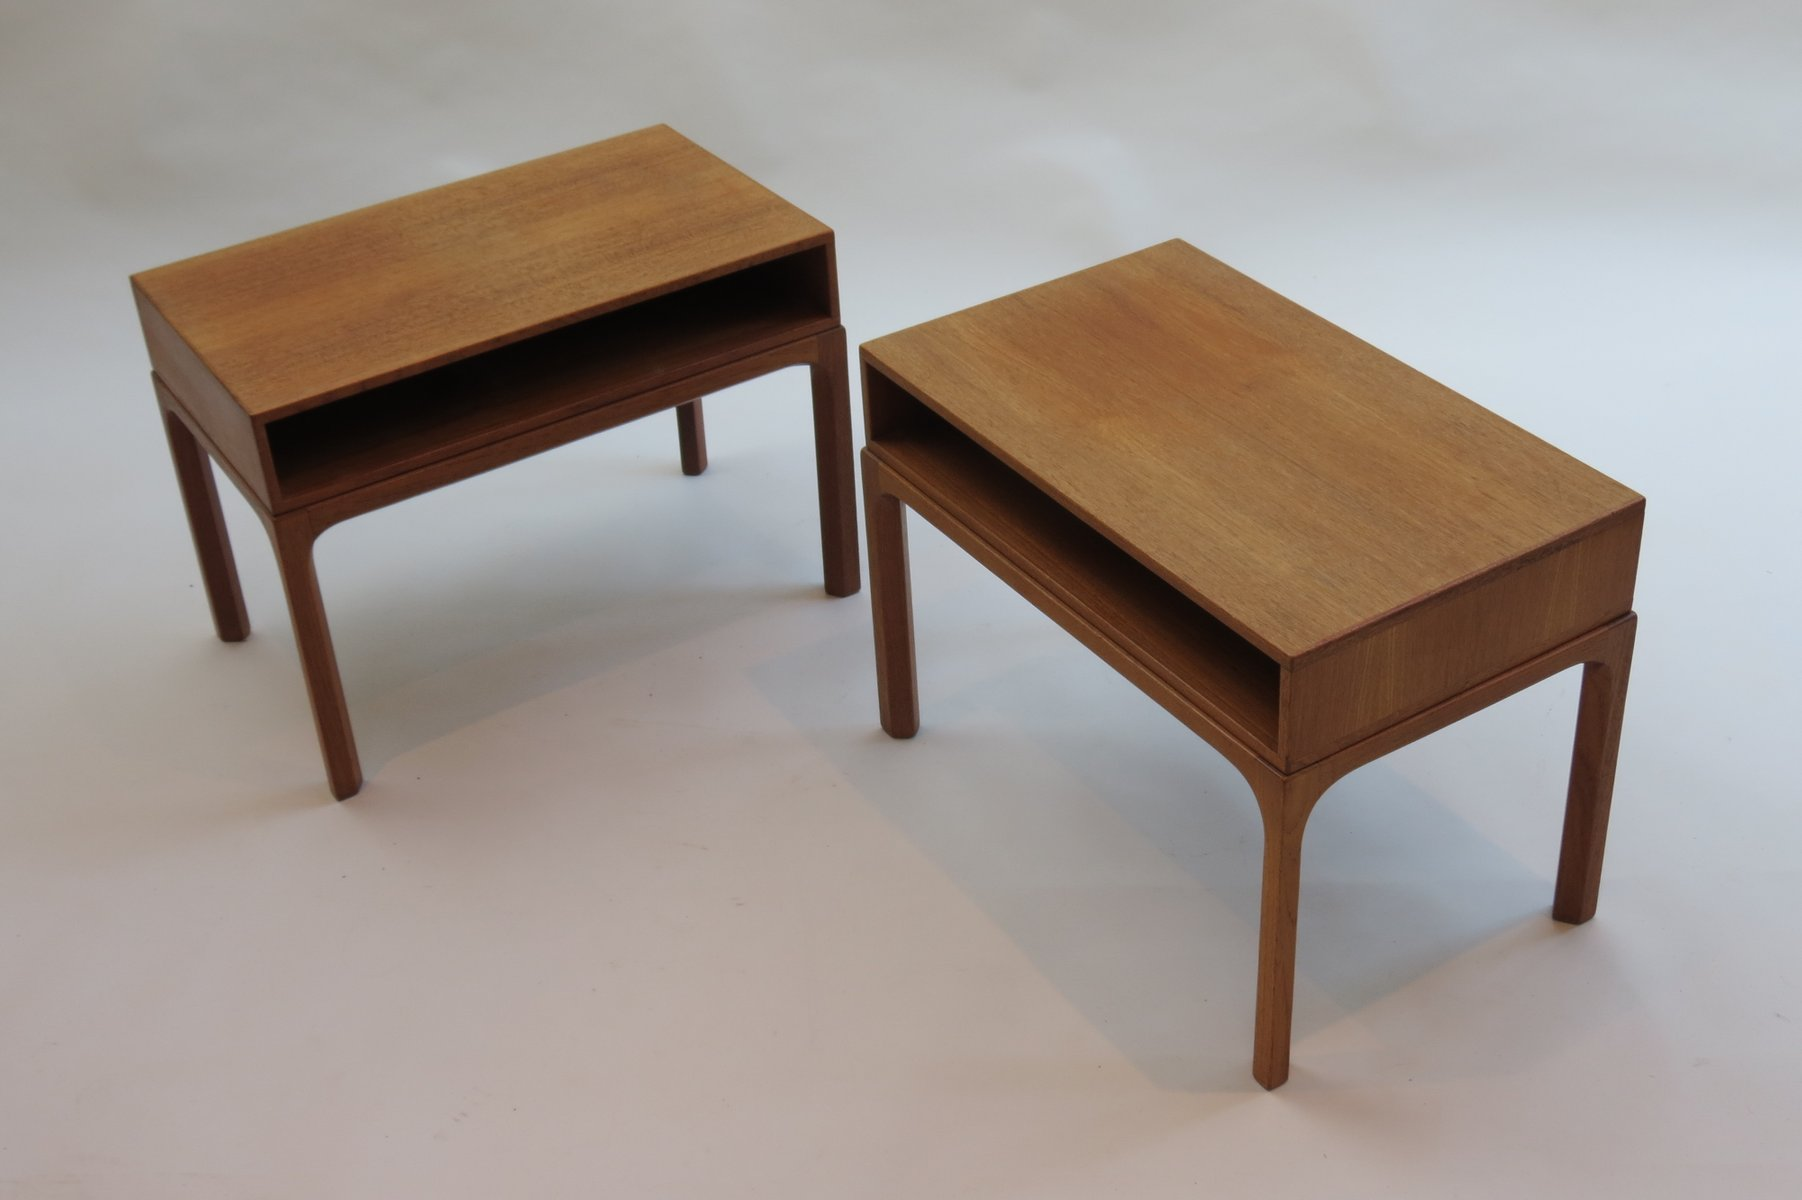 Table de chevet mod le 383 par aksel kjersgaard 1960s en - Table de chevet en anglais ...